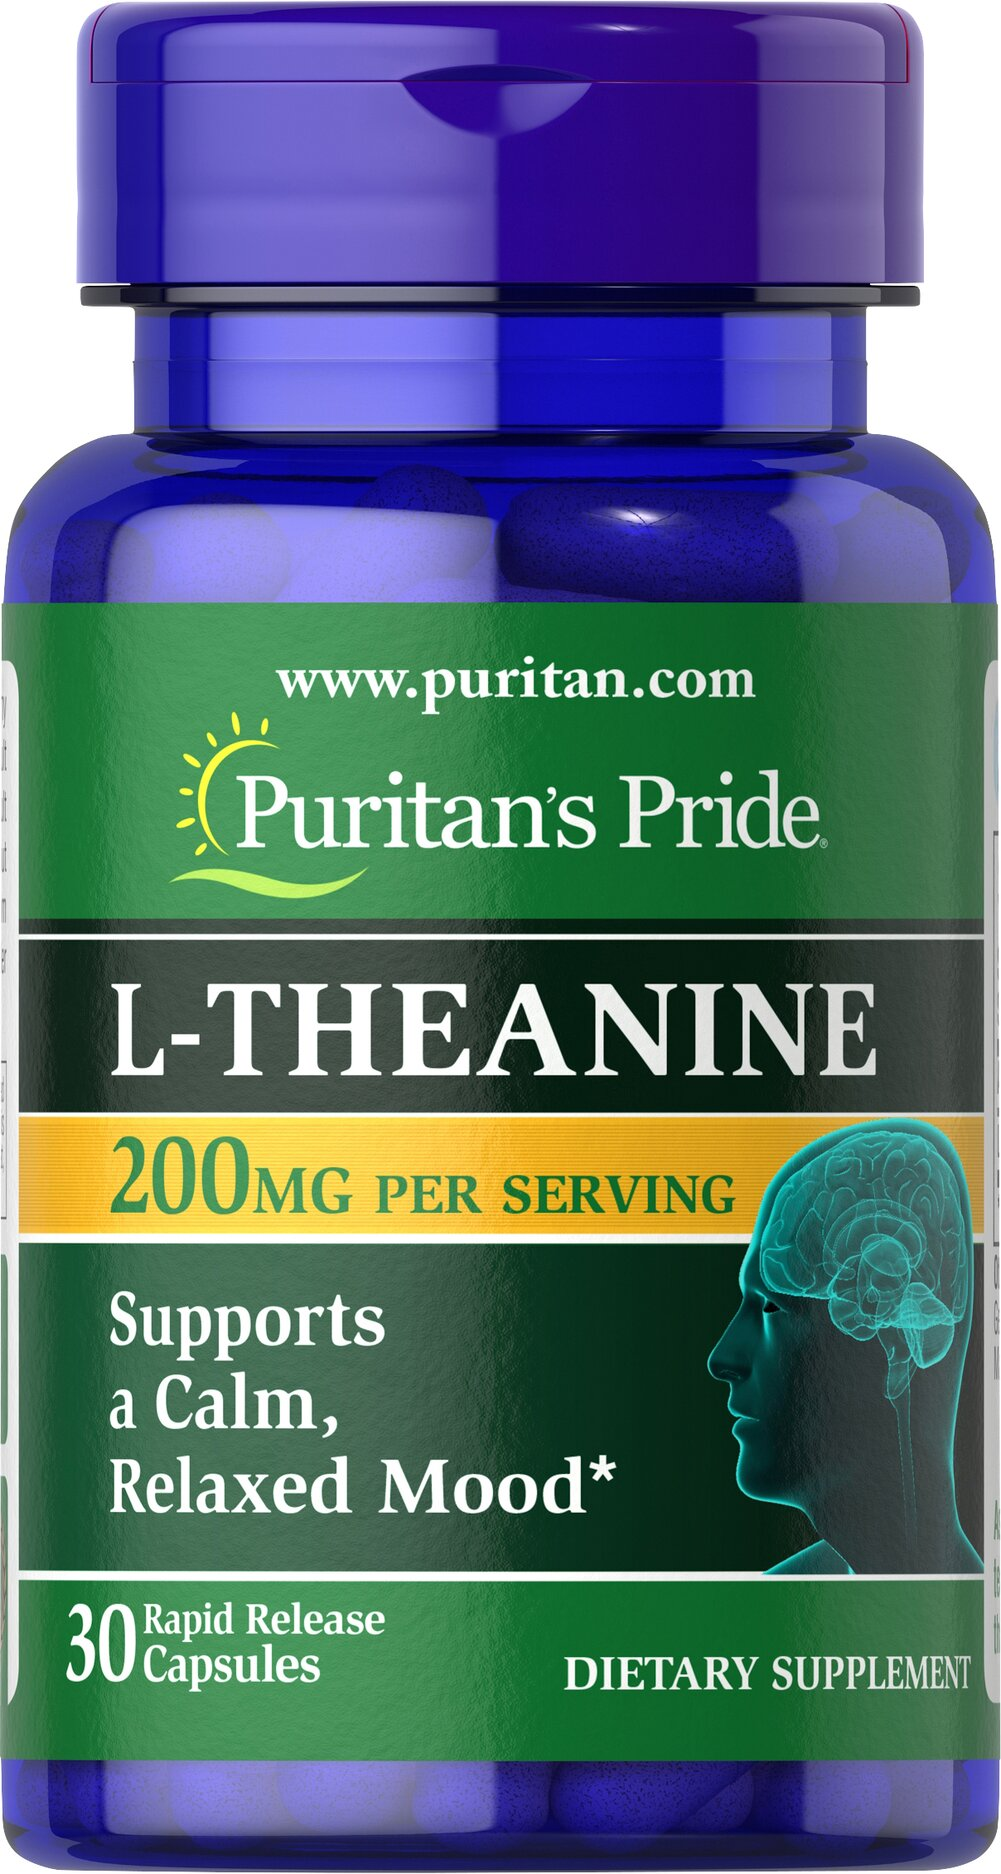 L-Theanine 200 mg <p>A close relative of Glutamate, studies indicate that L-Theanine interacts with the neurotransmitter, GABA (gammaminobutyrate).** GABA, known for its importance in nervous system functioning, works with the mood centers of the brain.** Studies in Japan show that L-Theanine helps support the body's ability to deal with PMS and occasional, everyday anxiety.**</p> 30 Capsules 200 mg $5.39